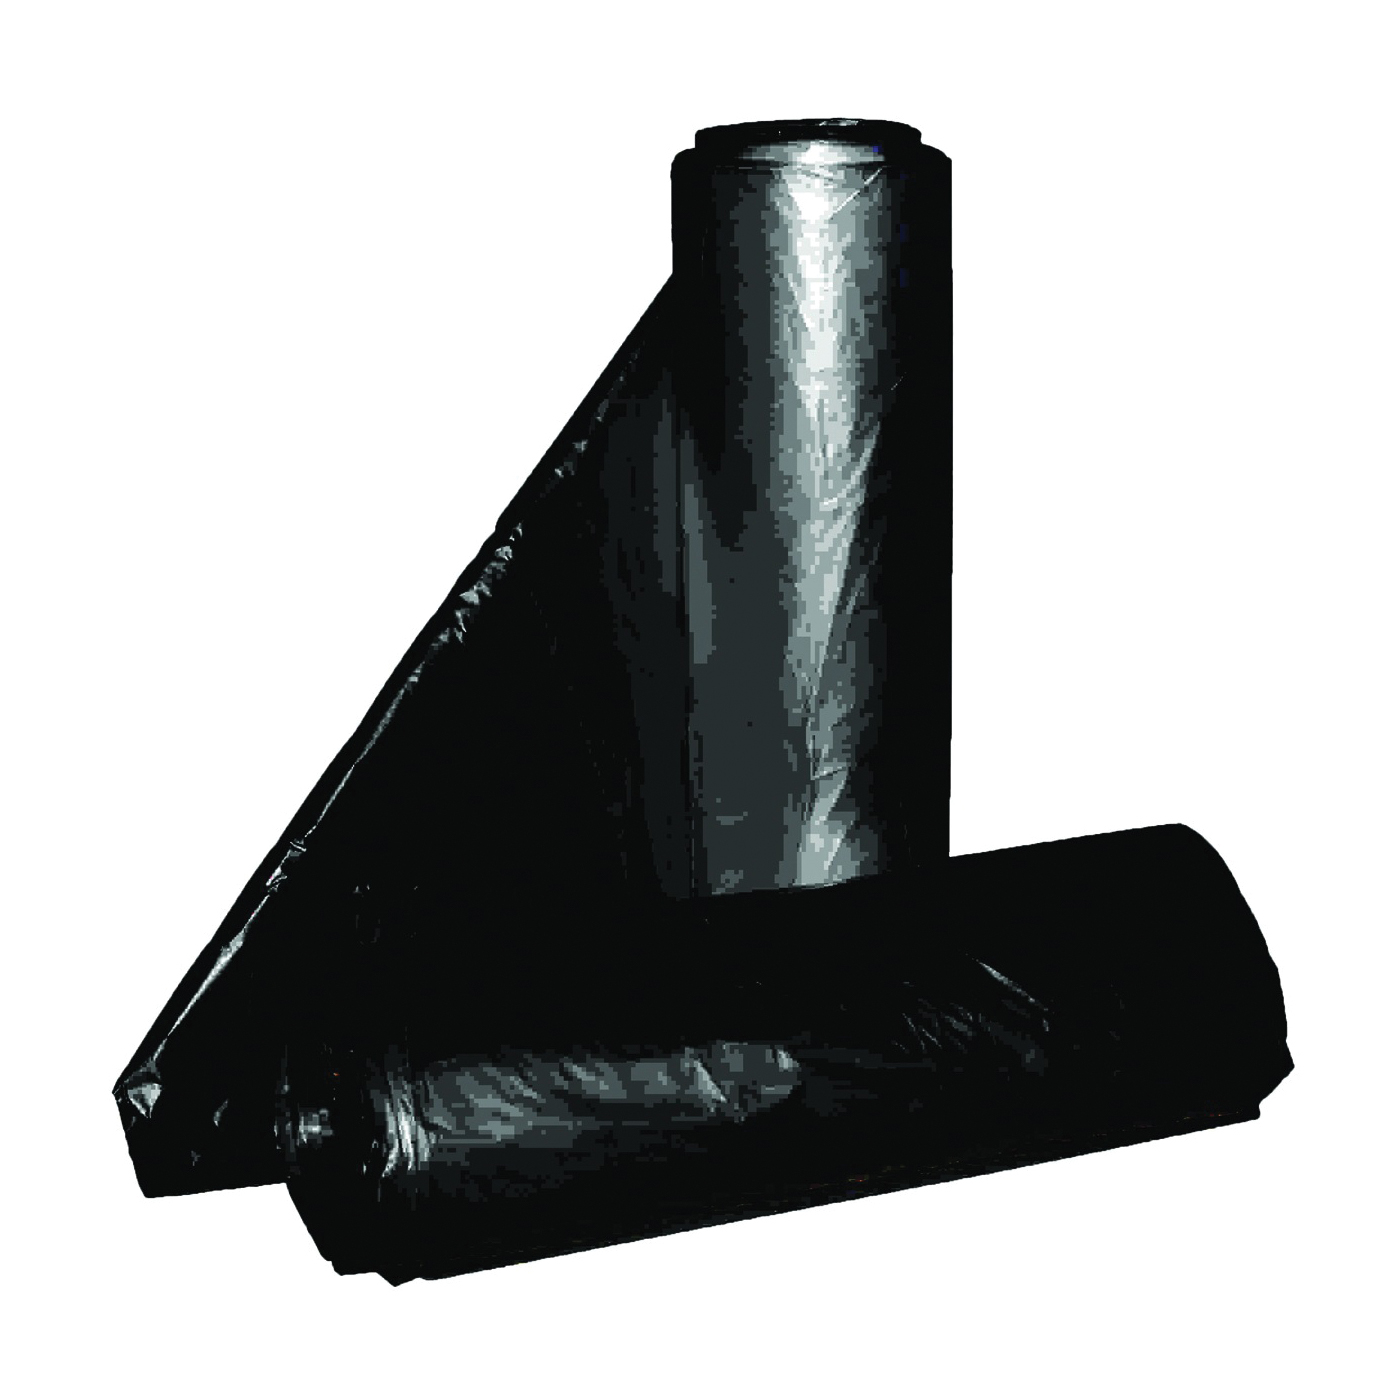 Picture of ALUF PLASTICS RL Series RL-3858XXH Can Liner, 55 to 60 gal Capacity, Repro Blend, Black